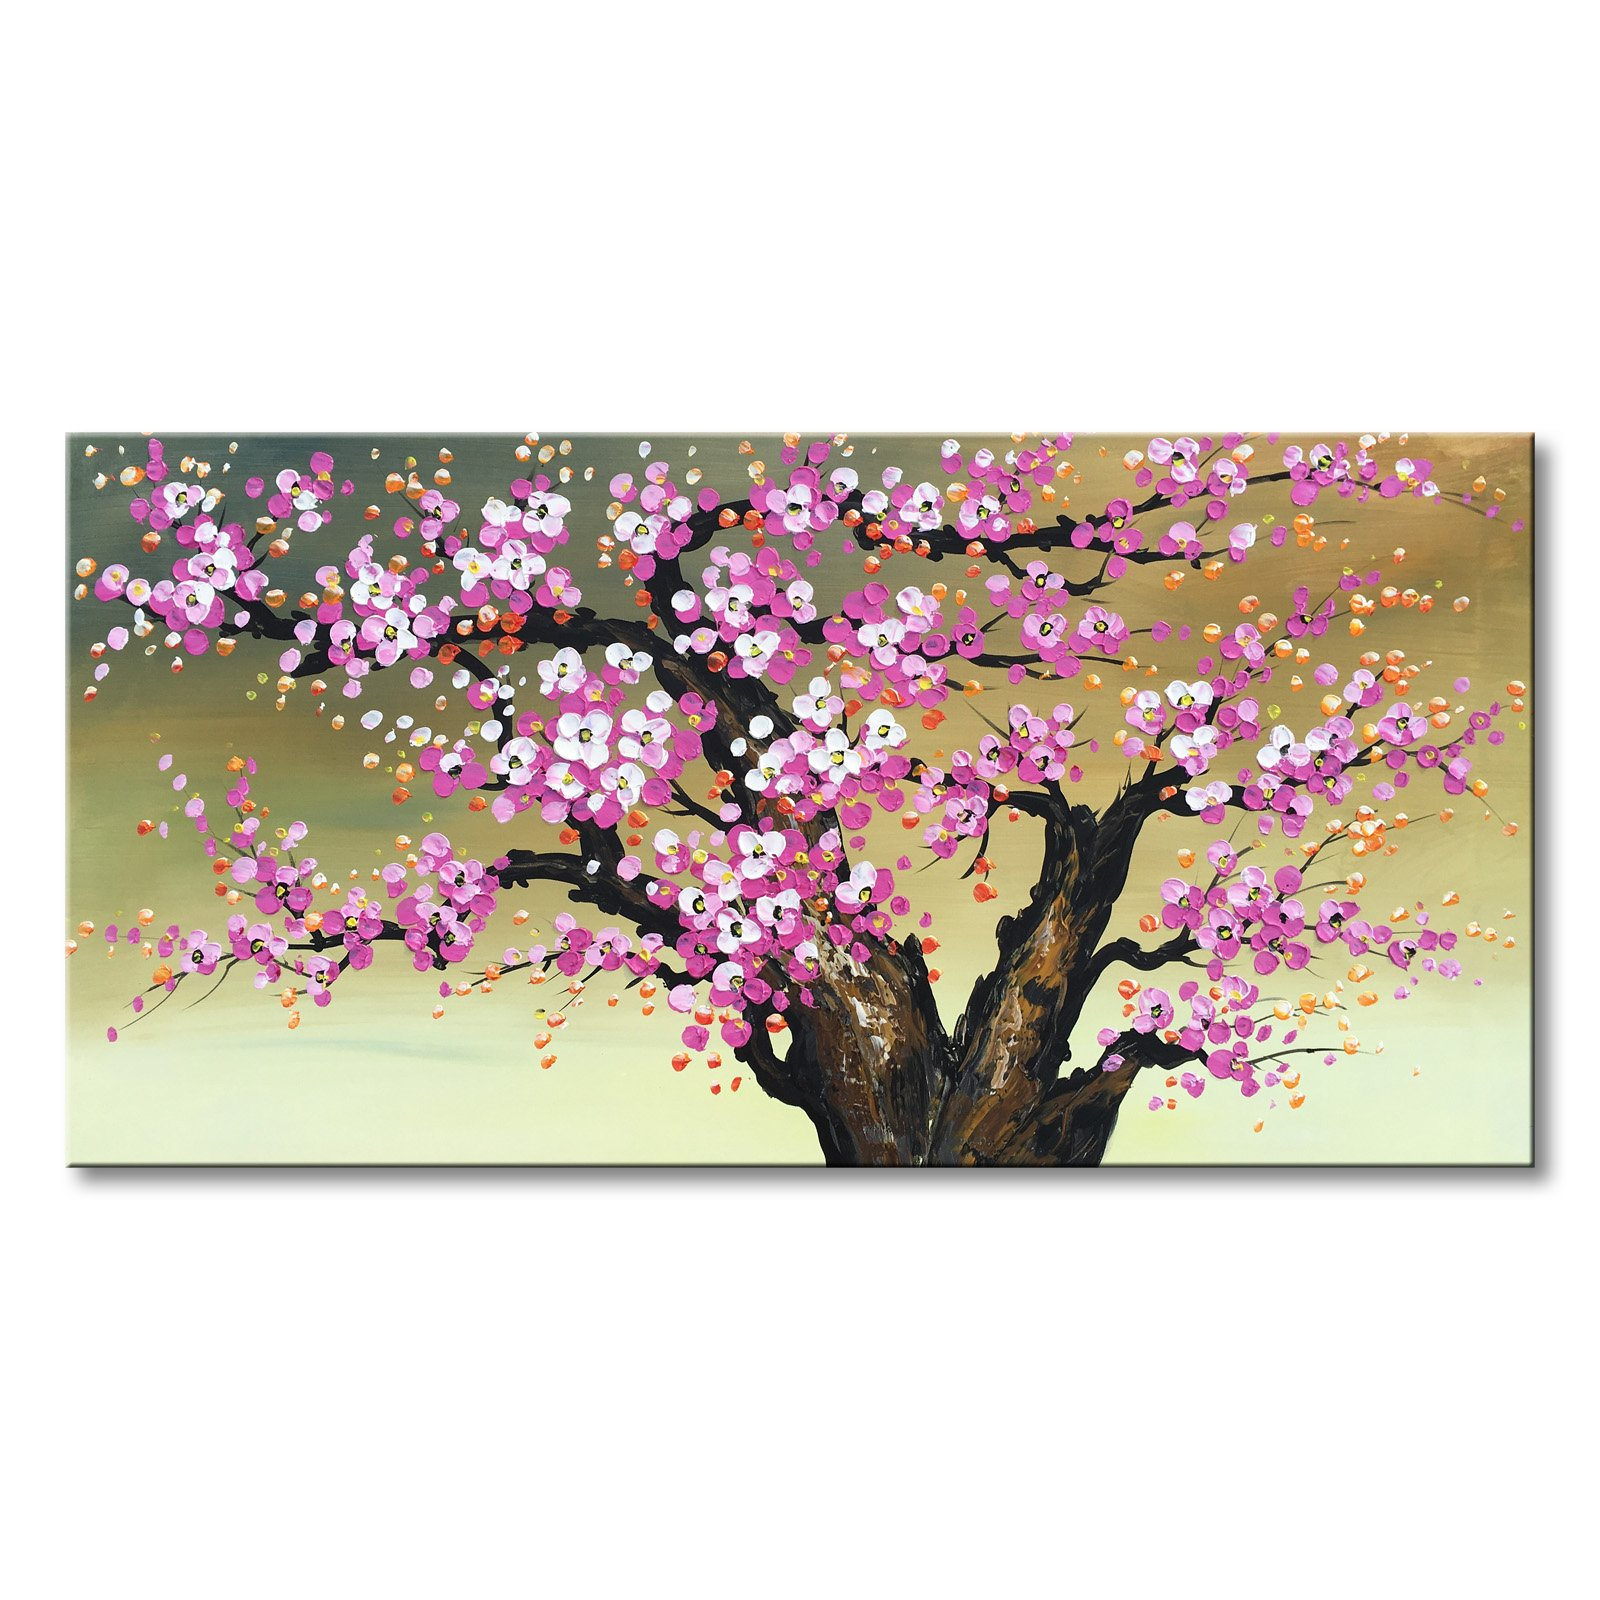 Plum Blossom Pink Flower Oil Paintings 100% Hand Painted Textured Canvas Pictures Decor Wall Art For Girls Bedroom (without frames 48''W x 24''H)